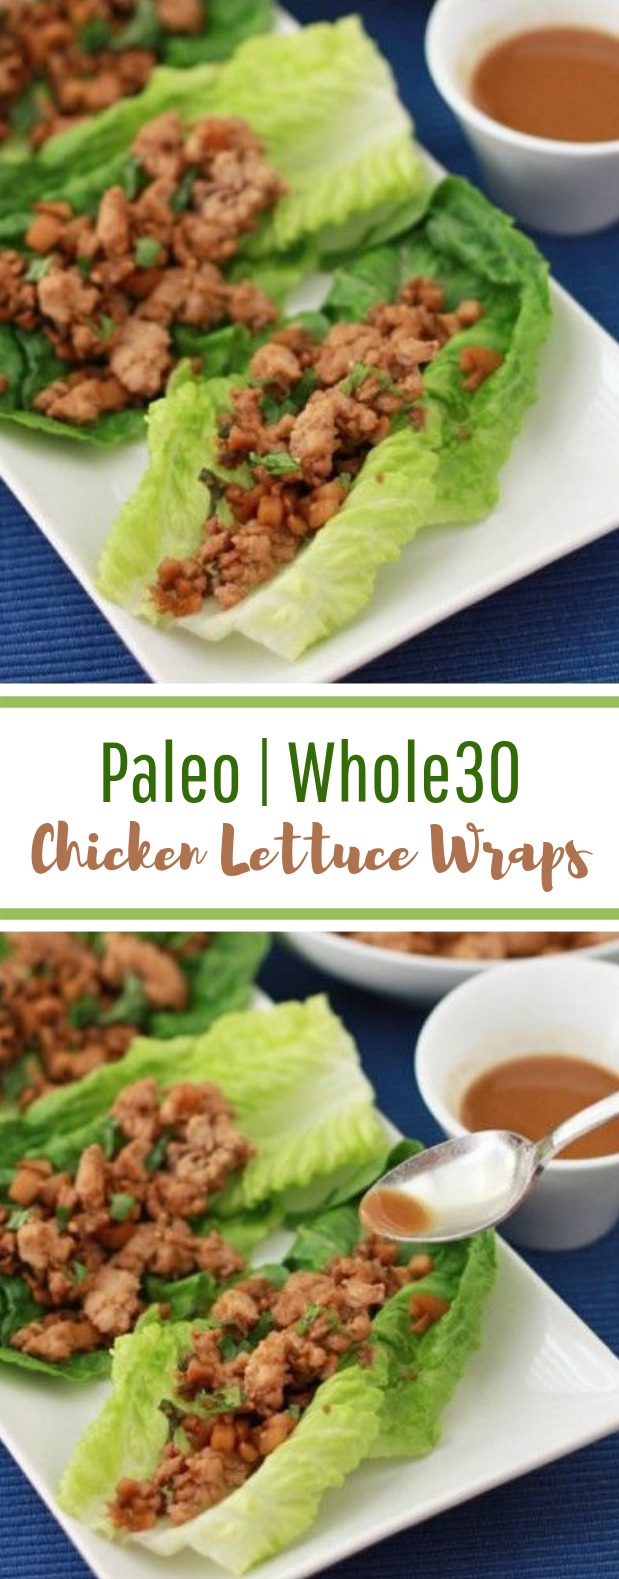 Chicken Lettuce Wraps #glutenfree #lowcarb